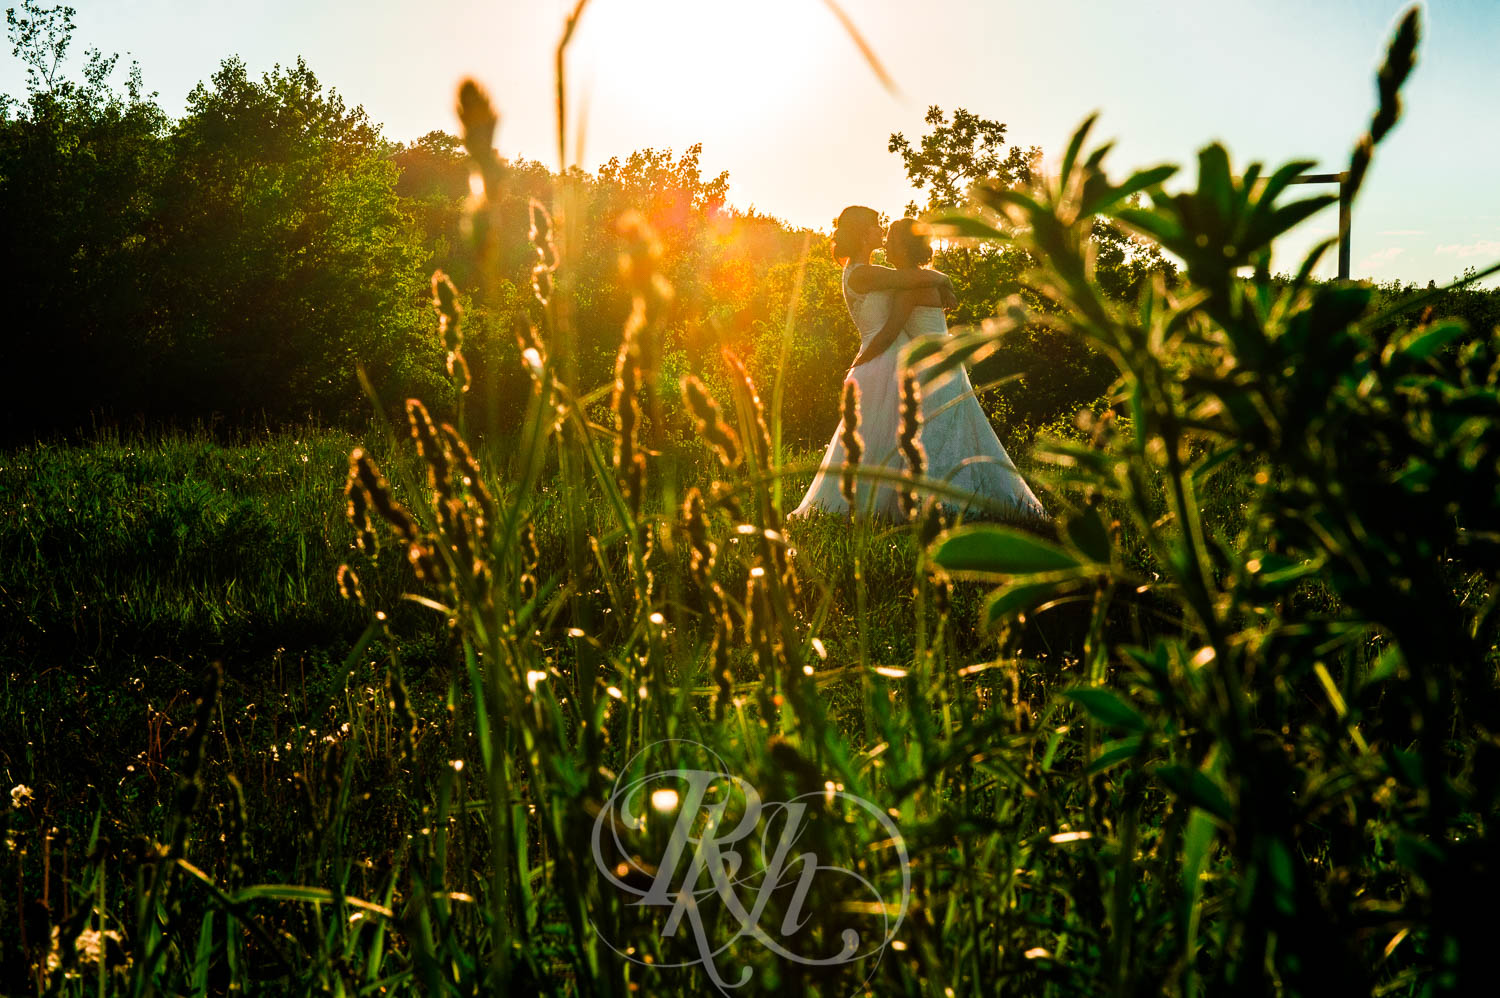 Britni & Paige - LGBT Minnesota Wedding Photography - Spirit Mountain - RKH Images  (29 of 32).jpg